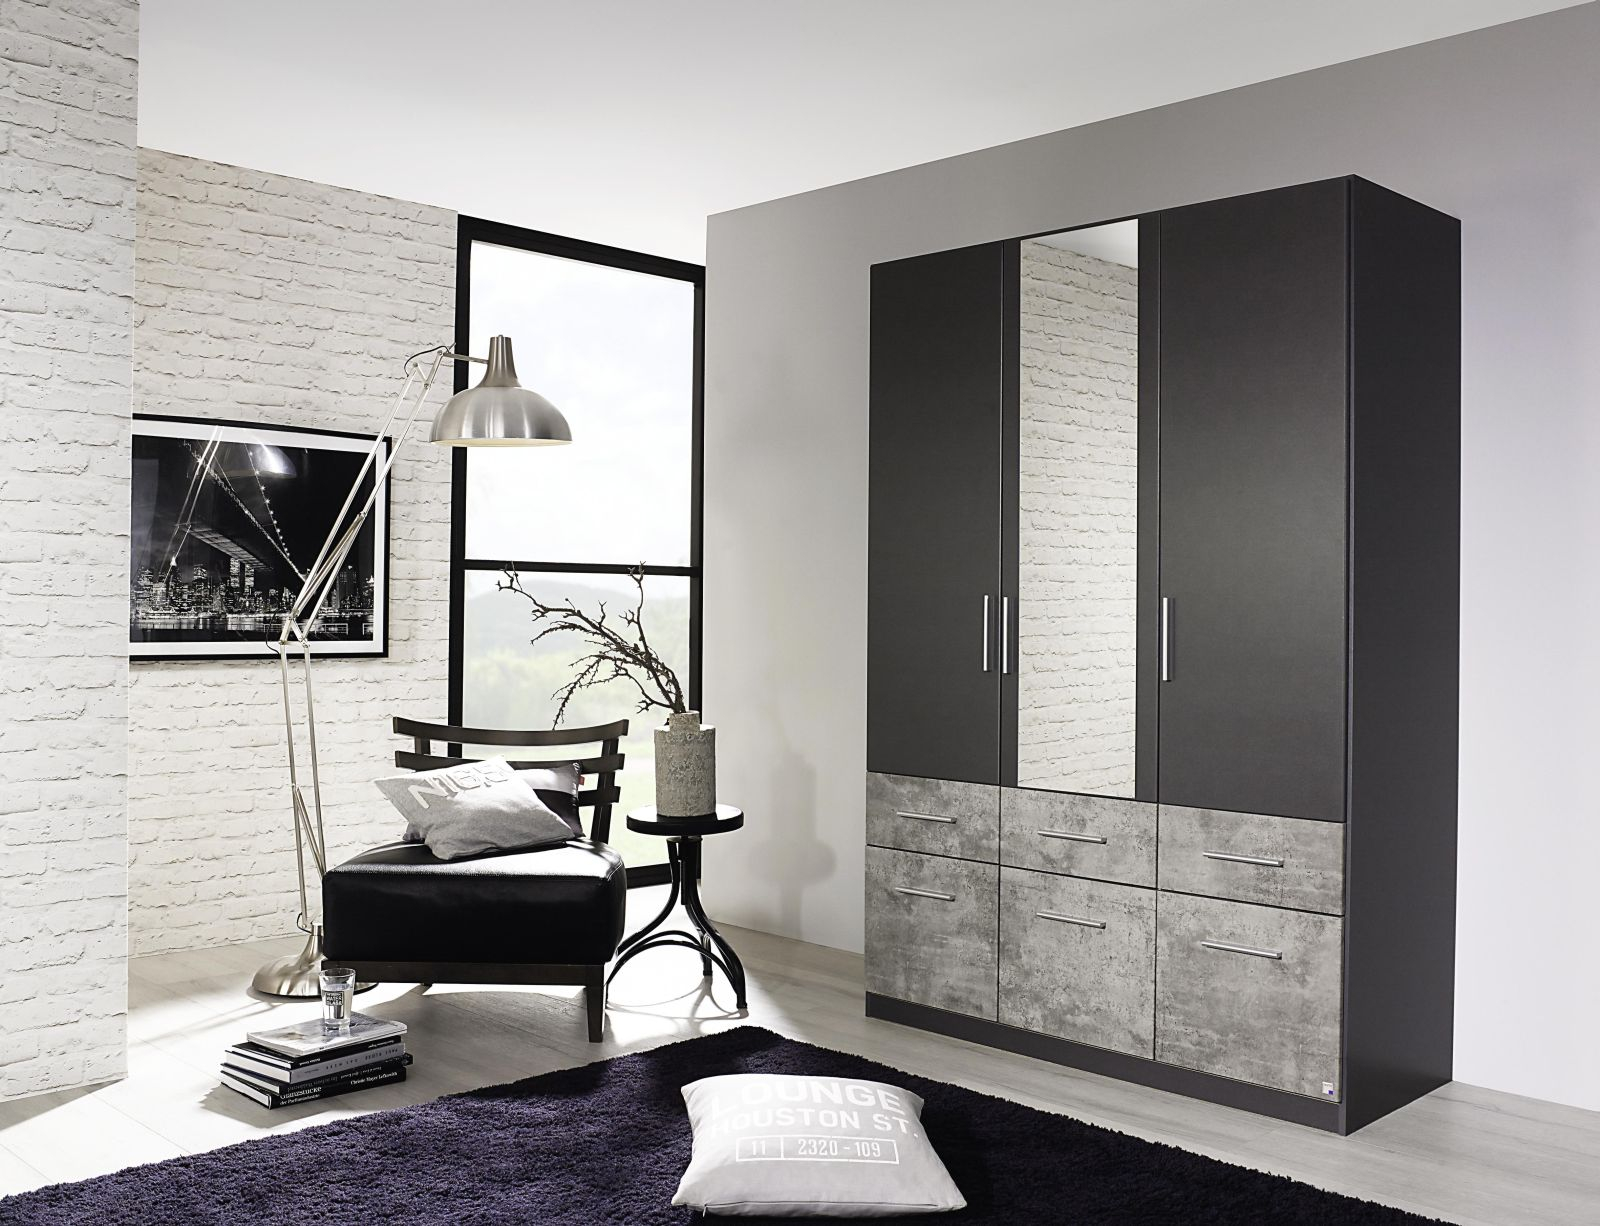 kleiderschrank lorch extra kleiderschr nke schlafzimmer sortiment pack zu m bel sb und. Black Bedroom Furniture Sets. Home Design Ideas